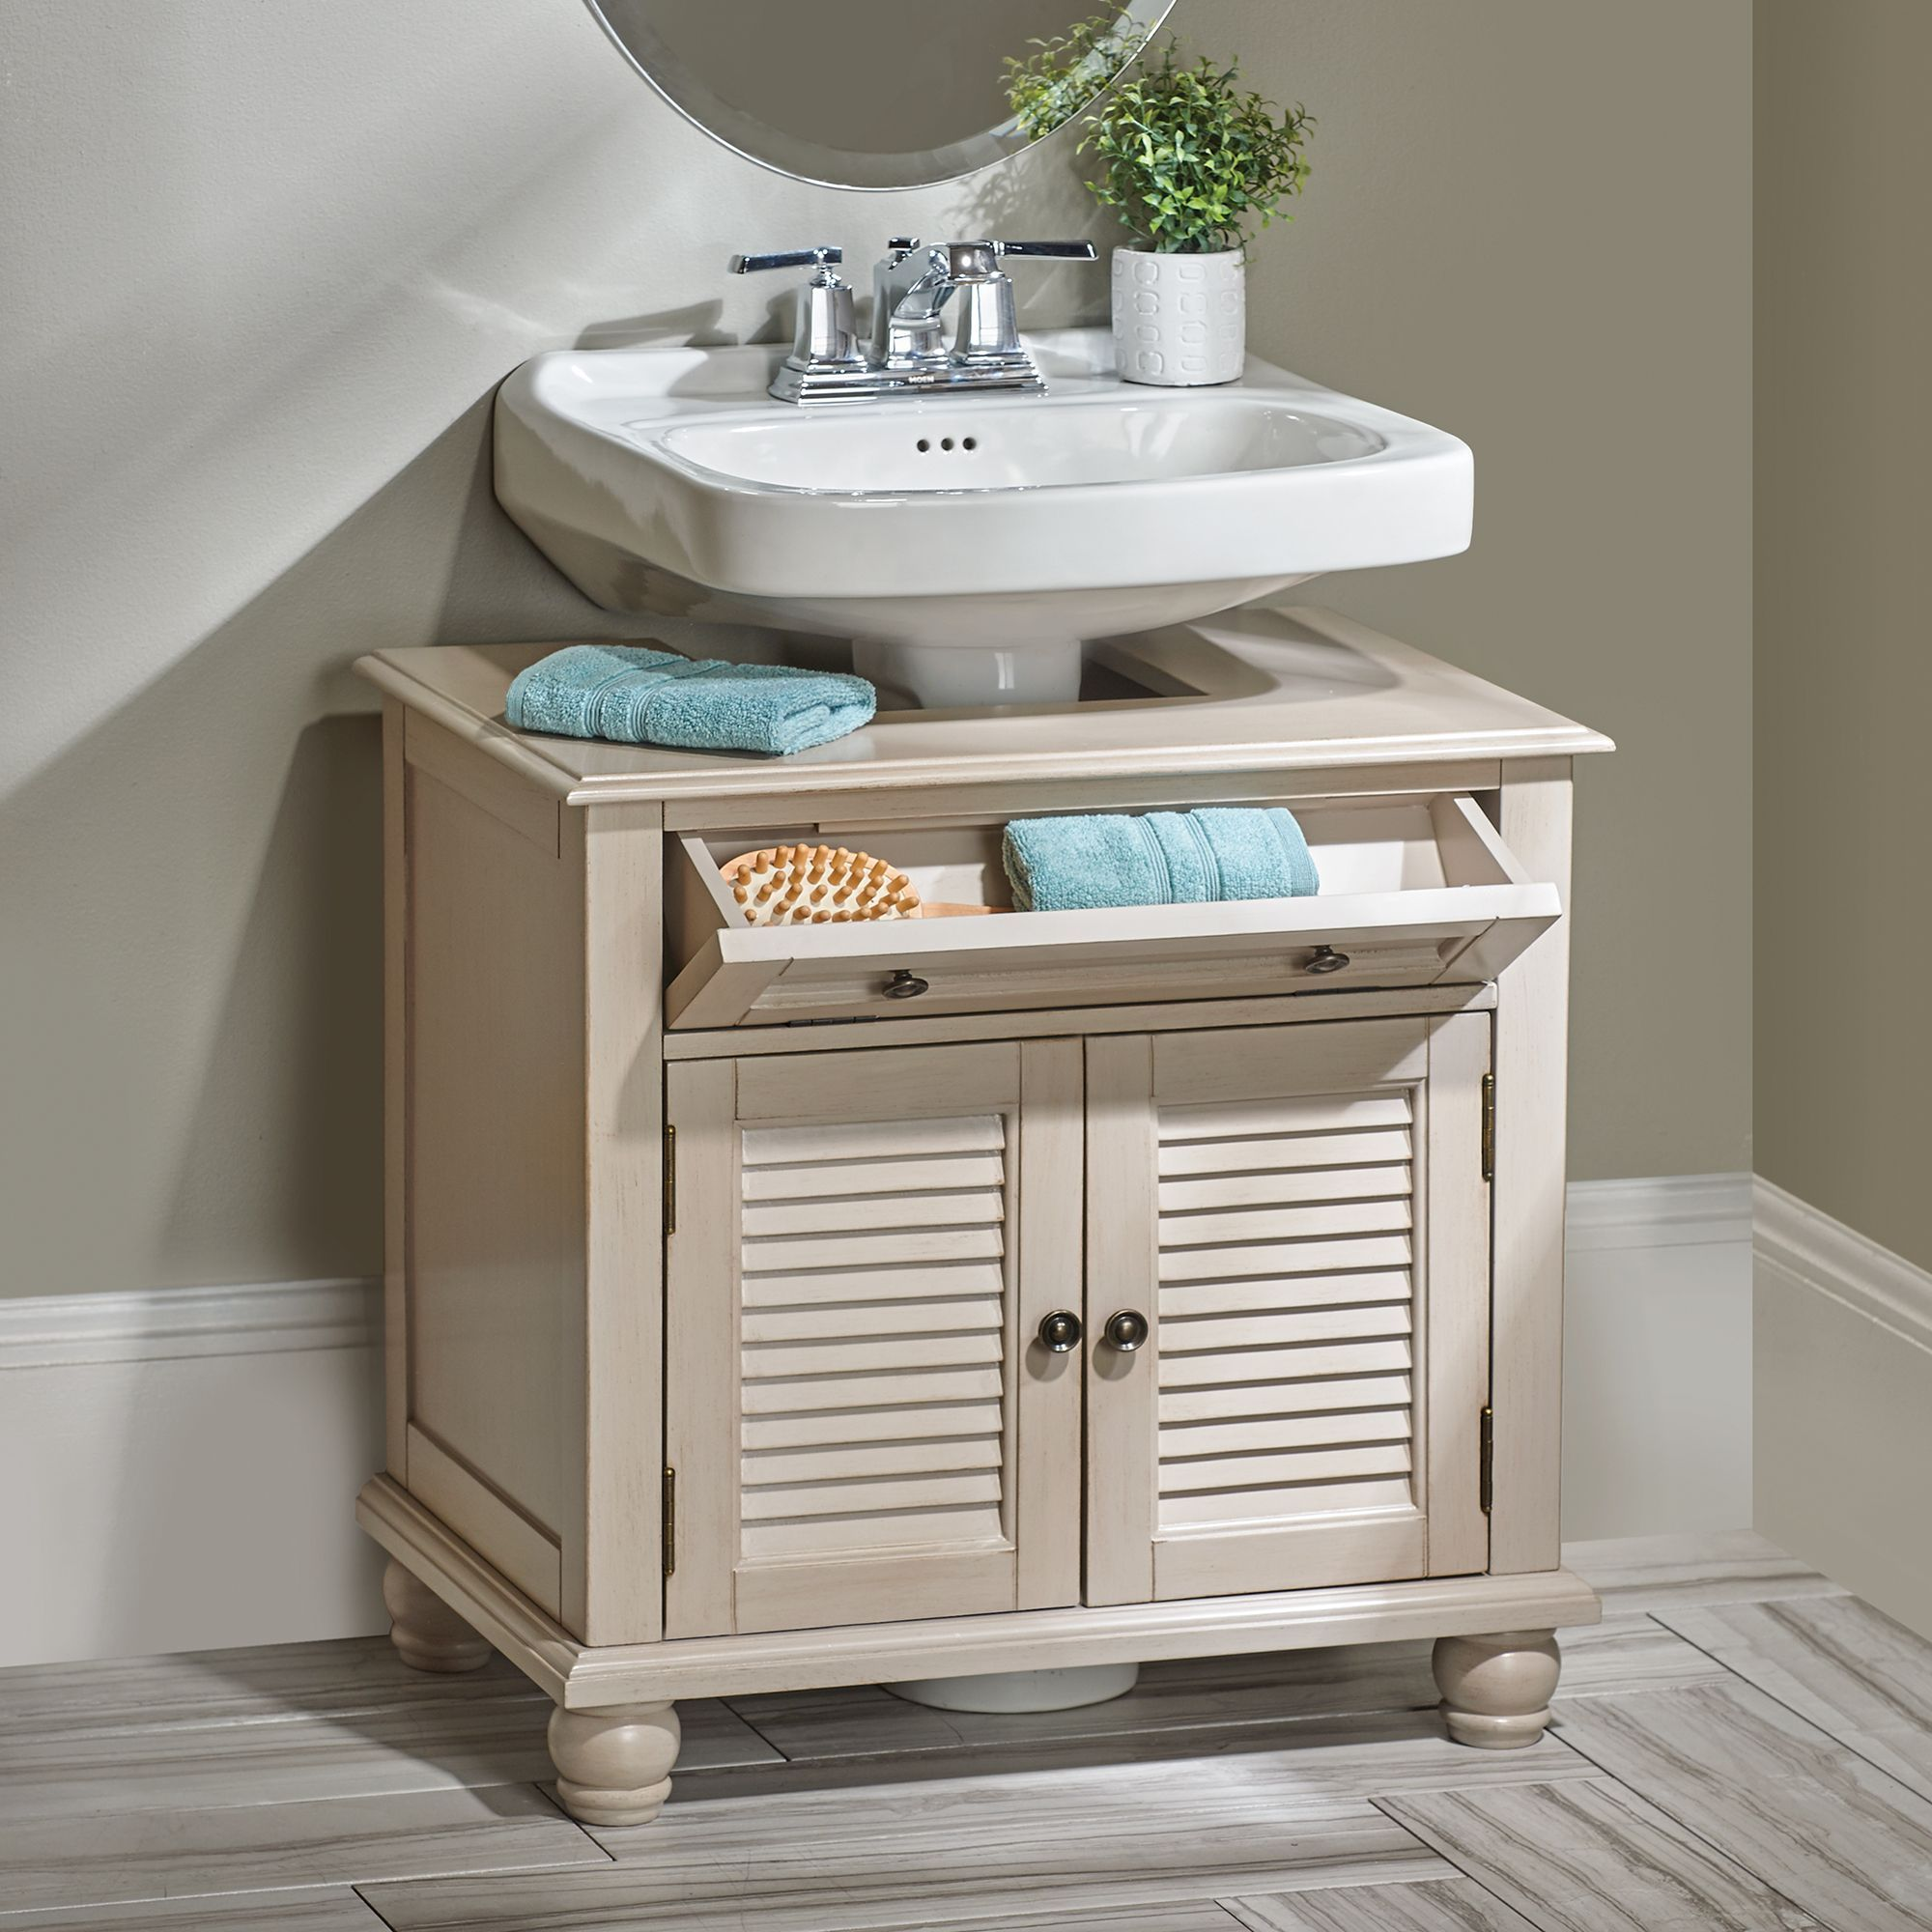 Newport louvered pedestal sink cabinet pedestal sink for Small bathroom vanity with storage